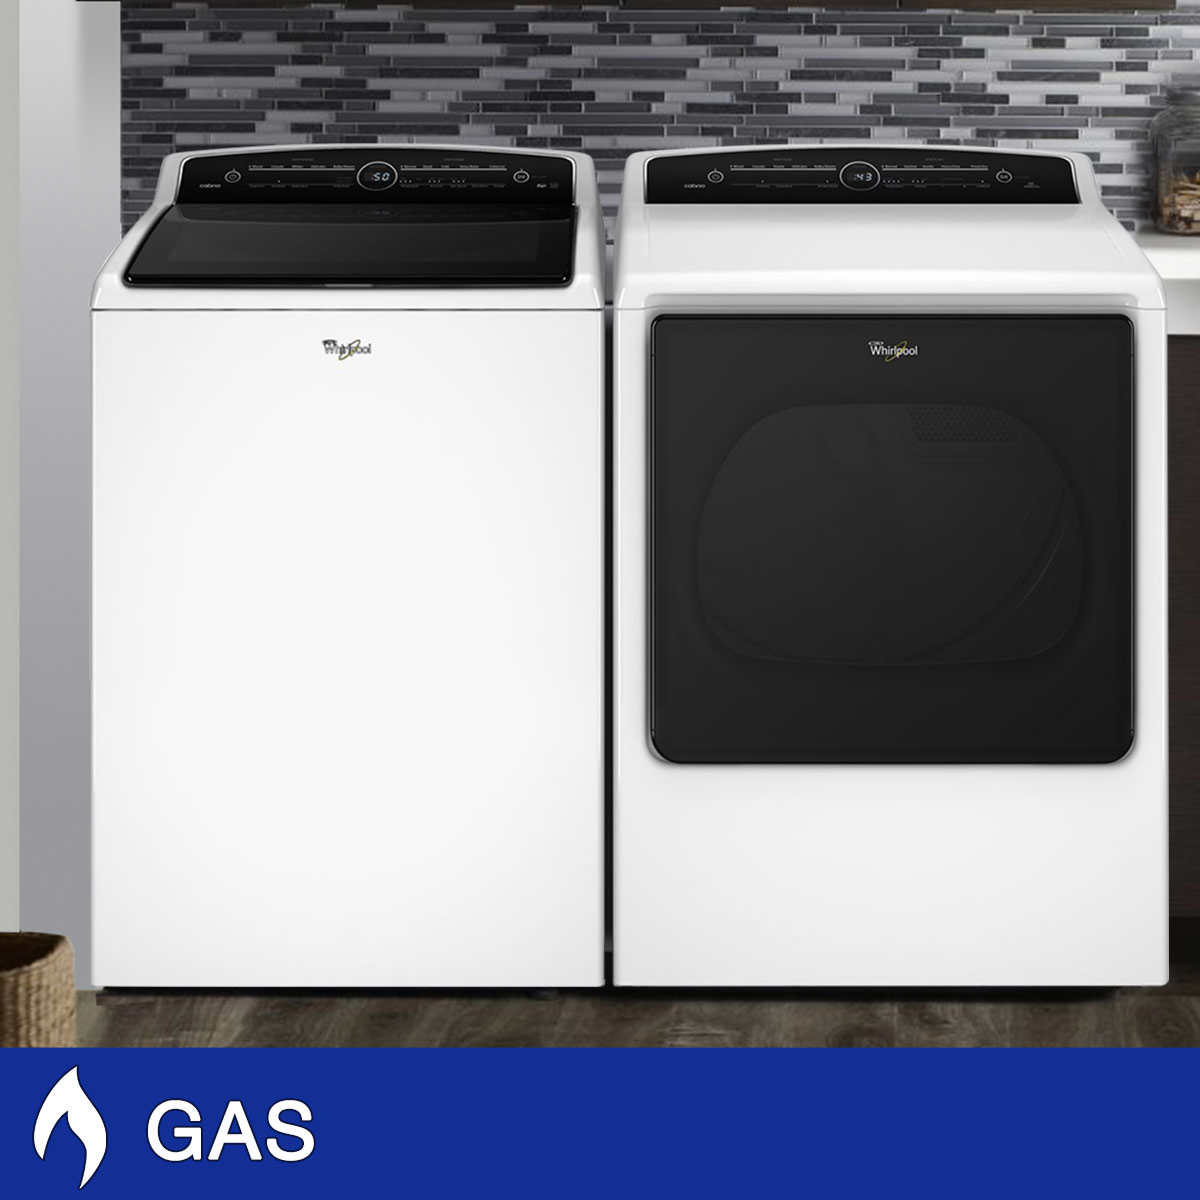 Whirlpool 5 3cuft Cabrio High Efficiency Washer With Precision Dispense And 8 8cuft Gas Dryer Quad Baffles In White